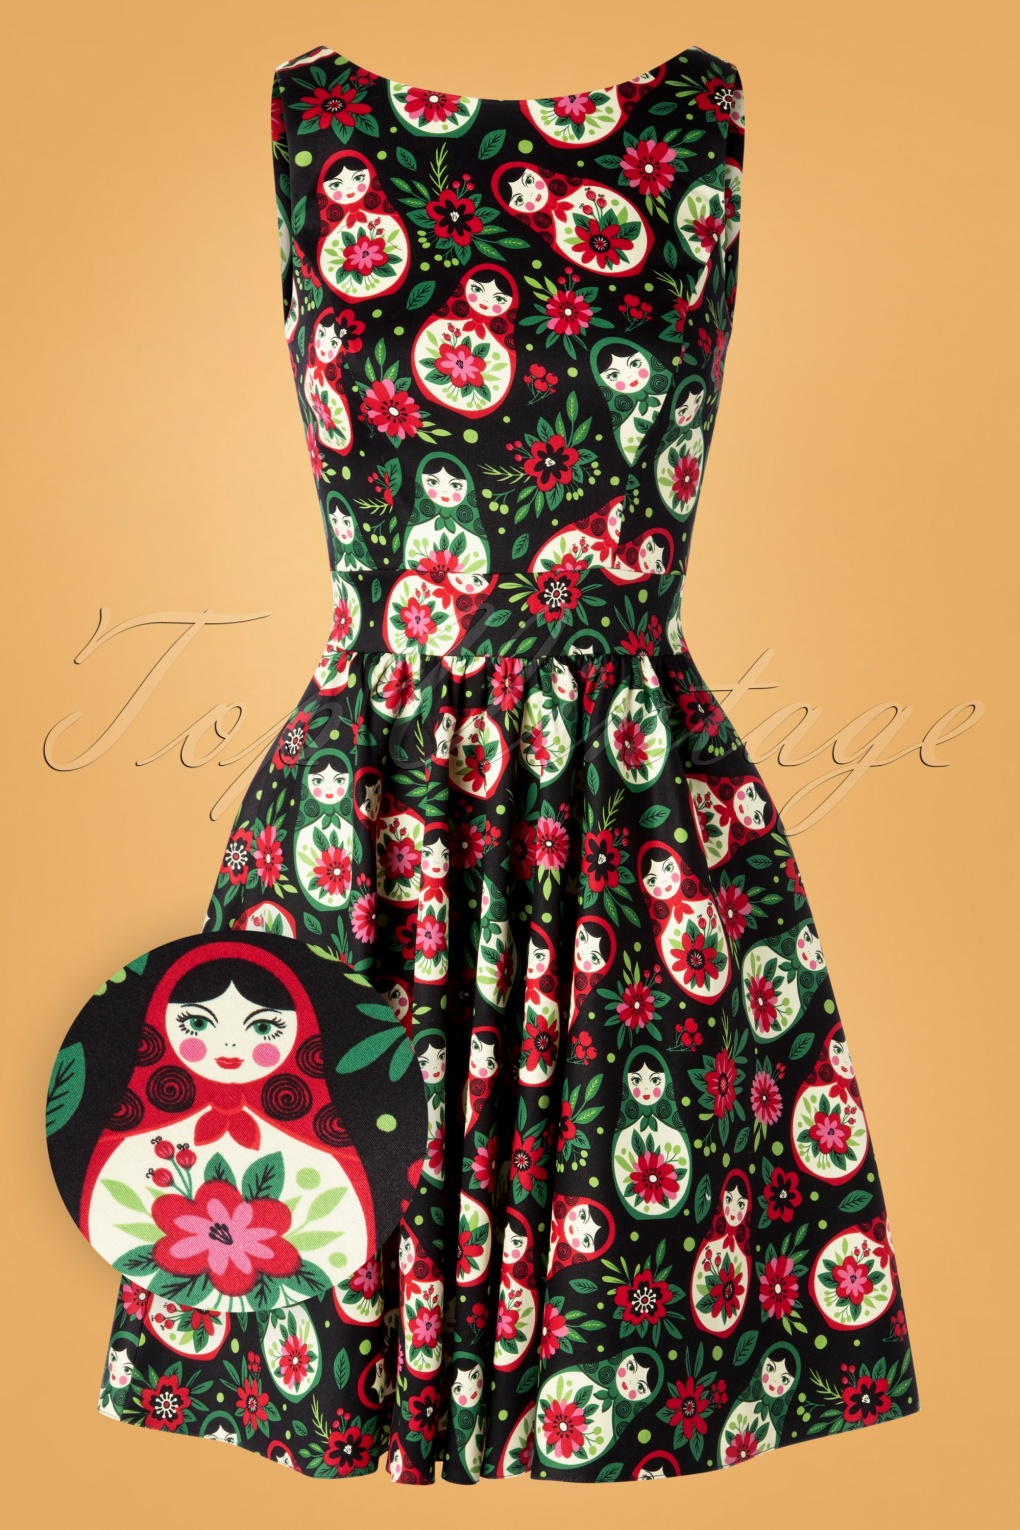 Vintage Christmas Gift Ideas for Women 50s Matryoshka Tea Dress in Black £62.35 AT vintagedancer.com